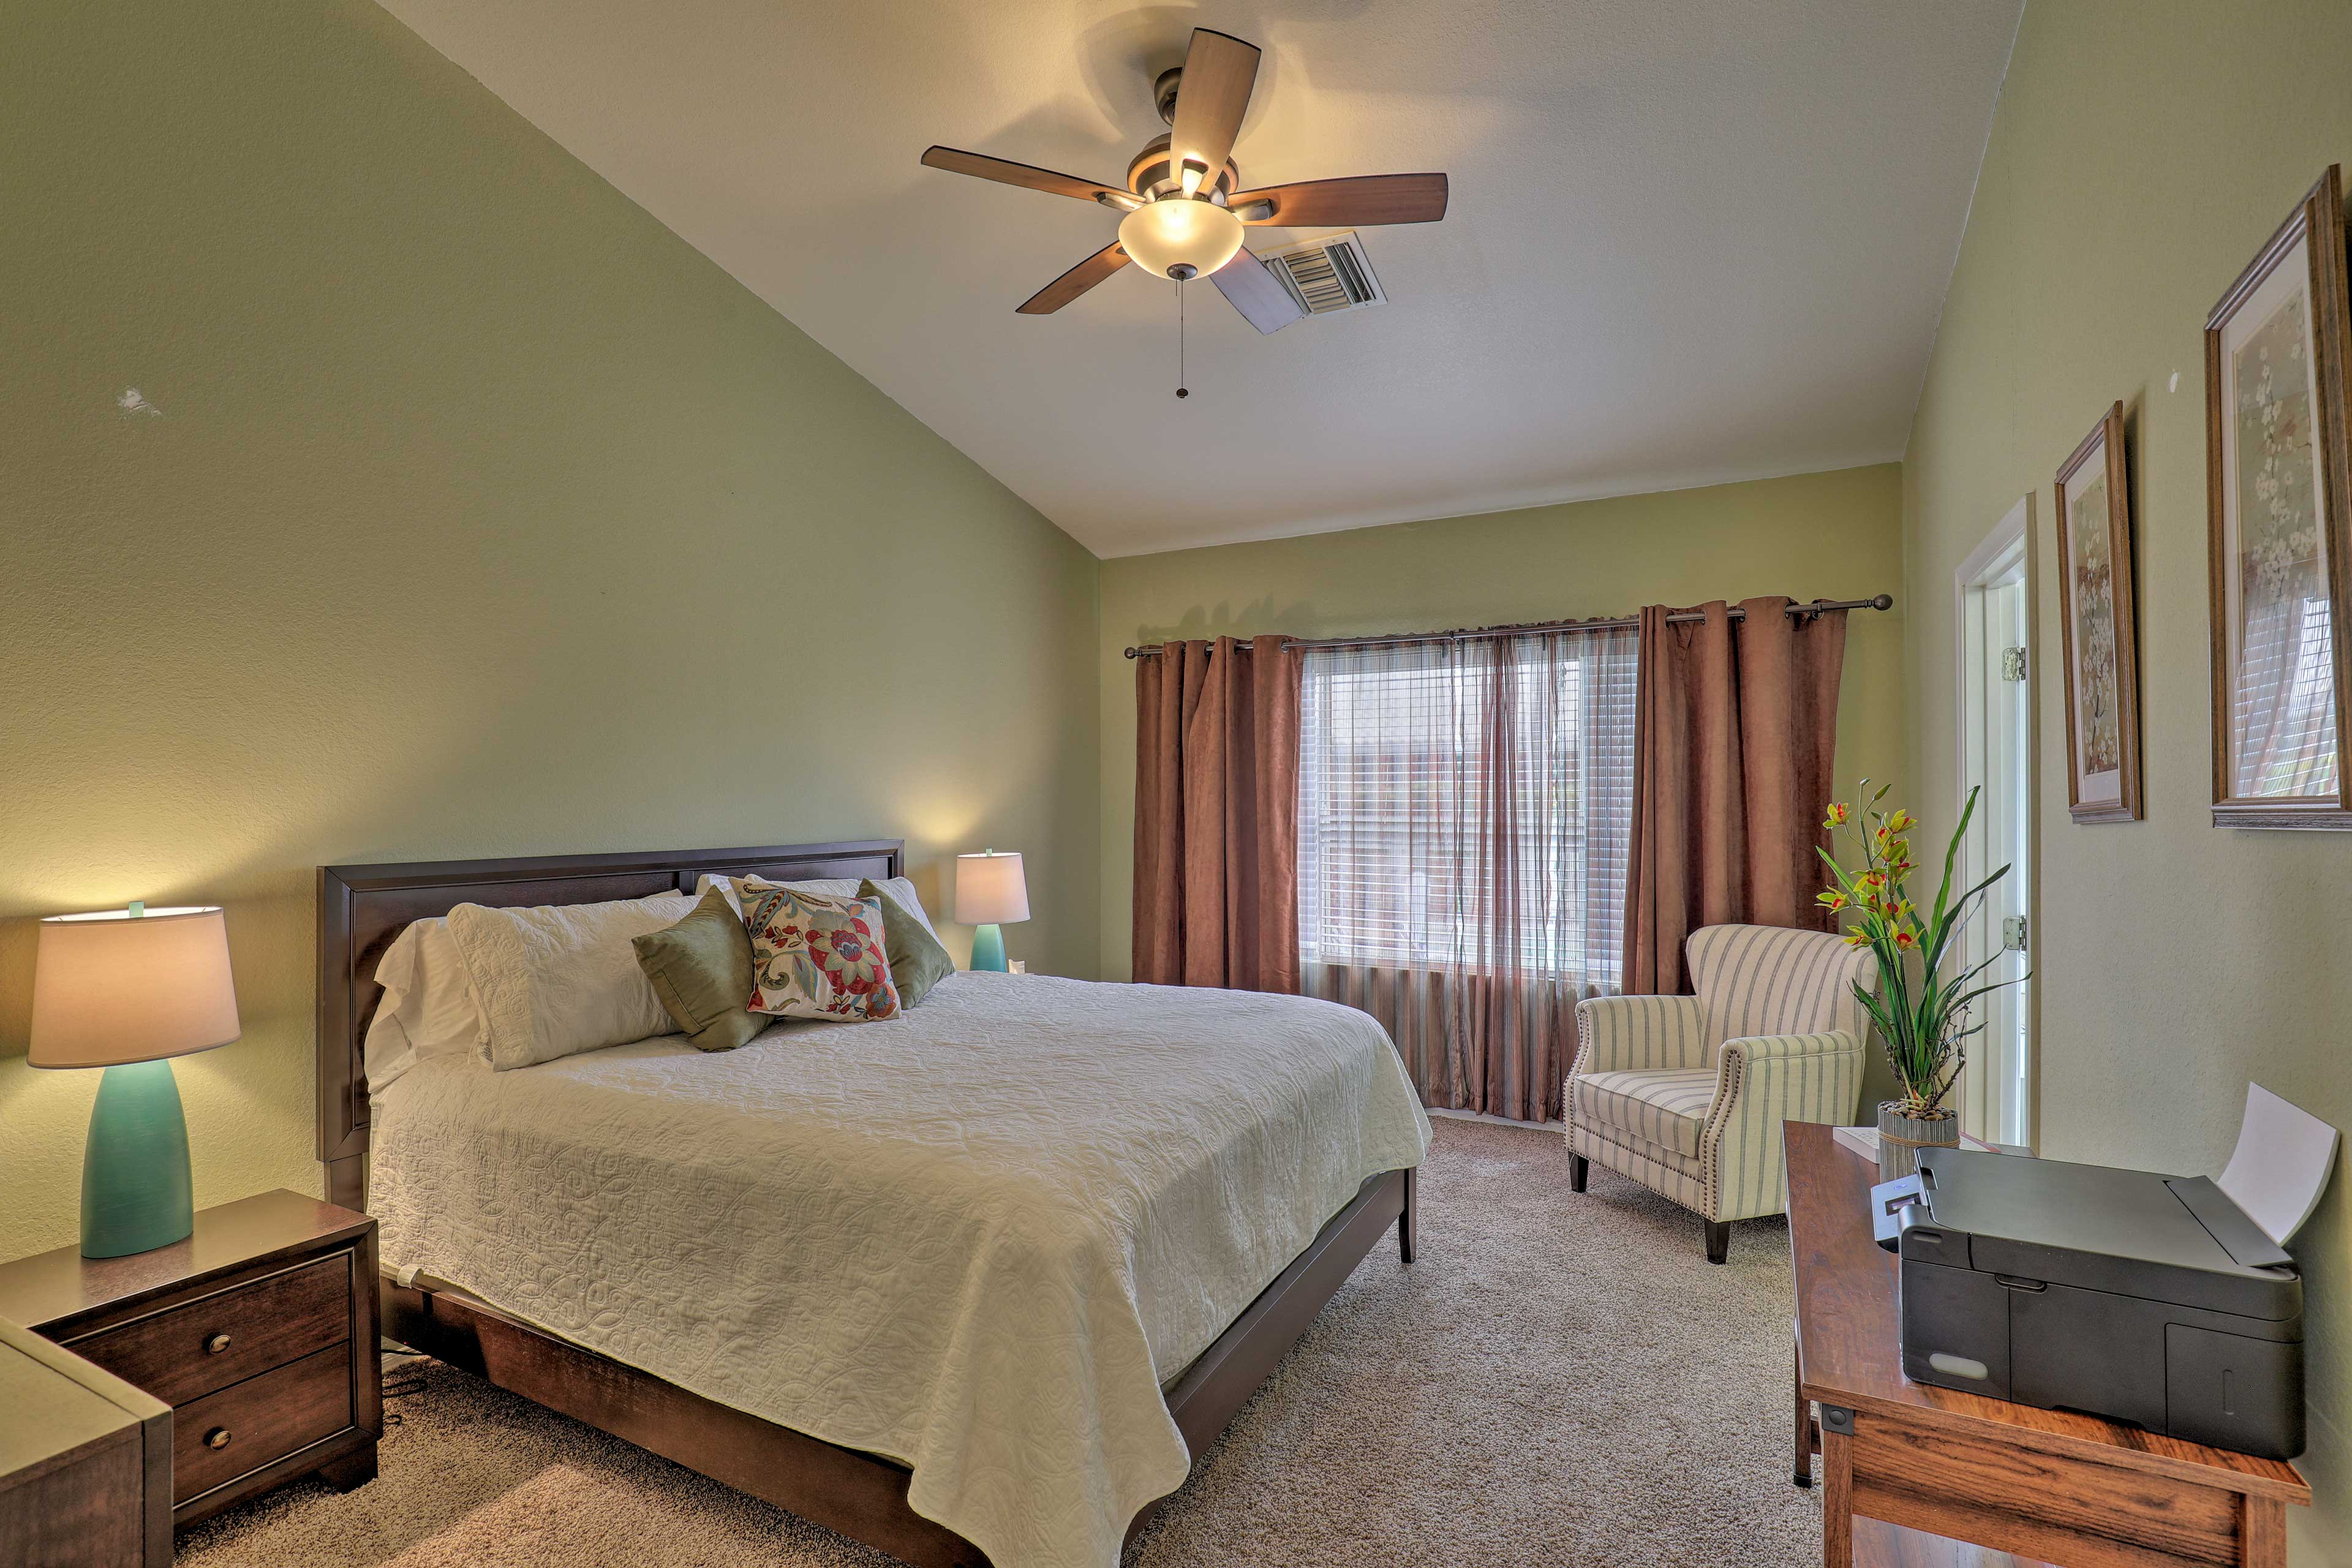 The home offers 3 bedrooms for guests to sleep in.